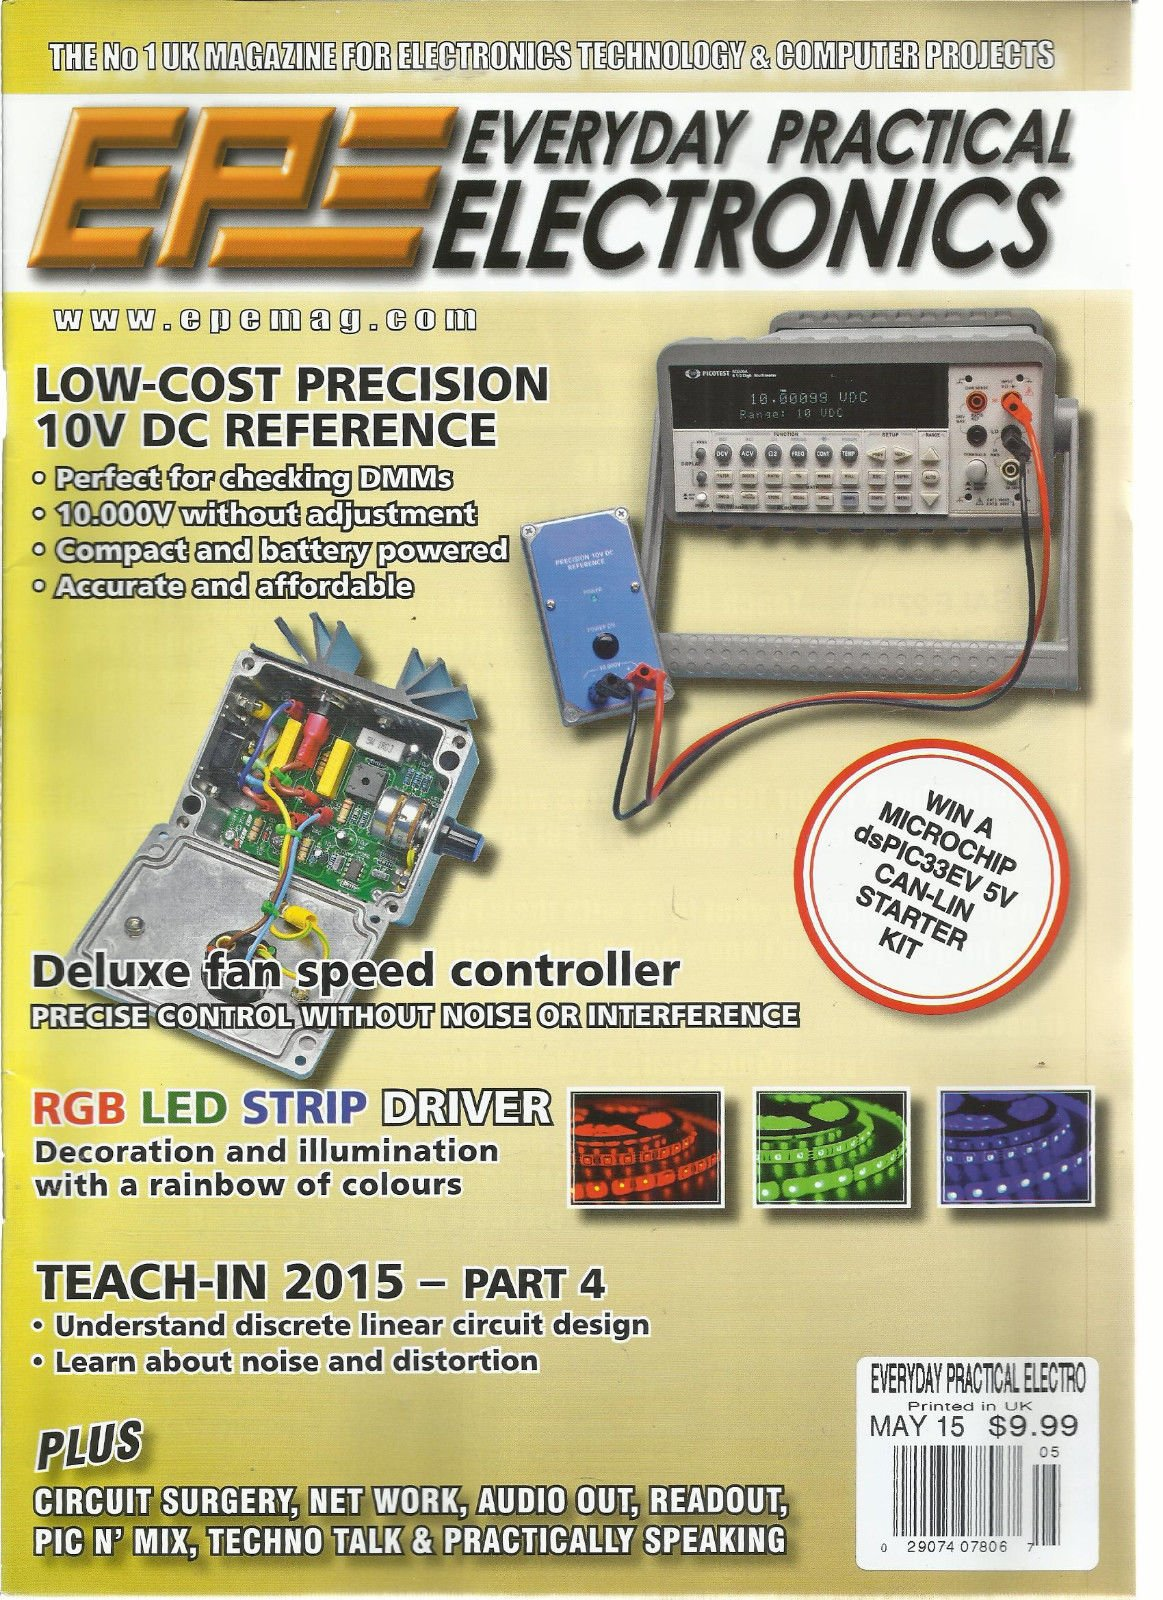 EPE EVERYDAY PRACTICAL ELECTRONICS, MAY, 2015 (LOW-COST PRECISION 10v DC